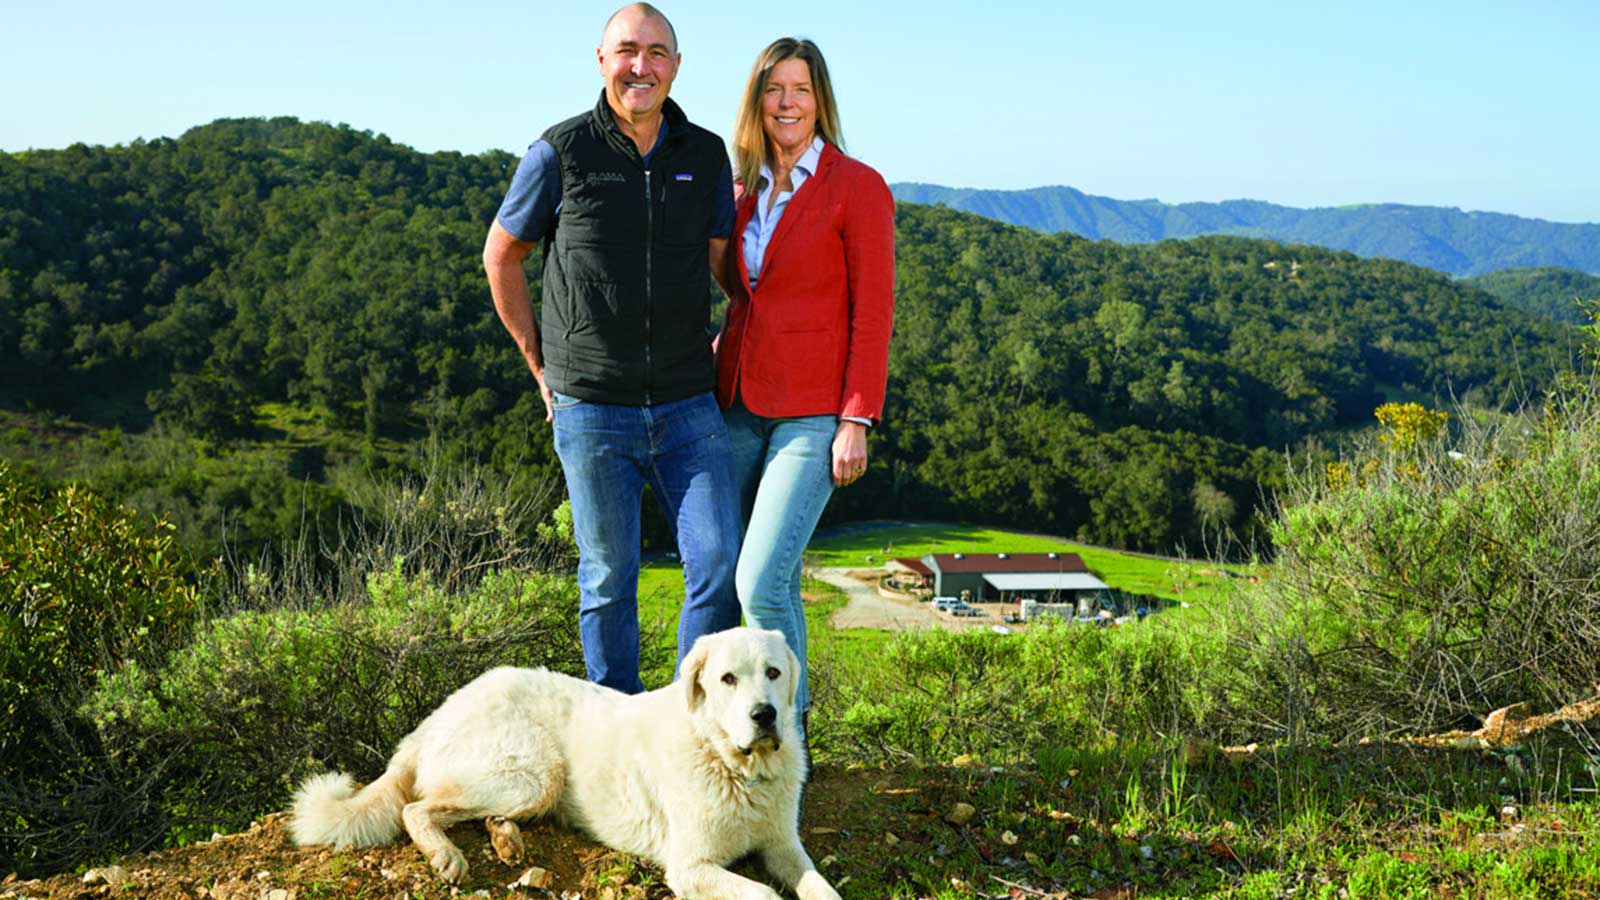 The owners with a large white dog at their feet